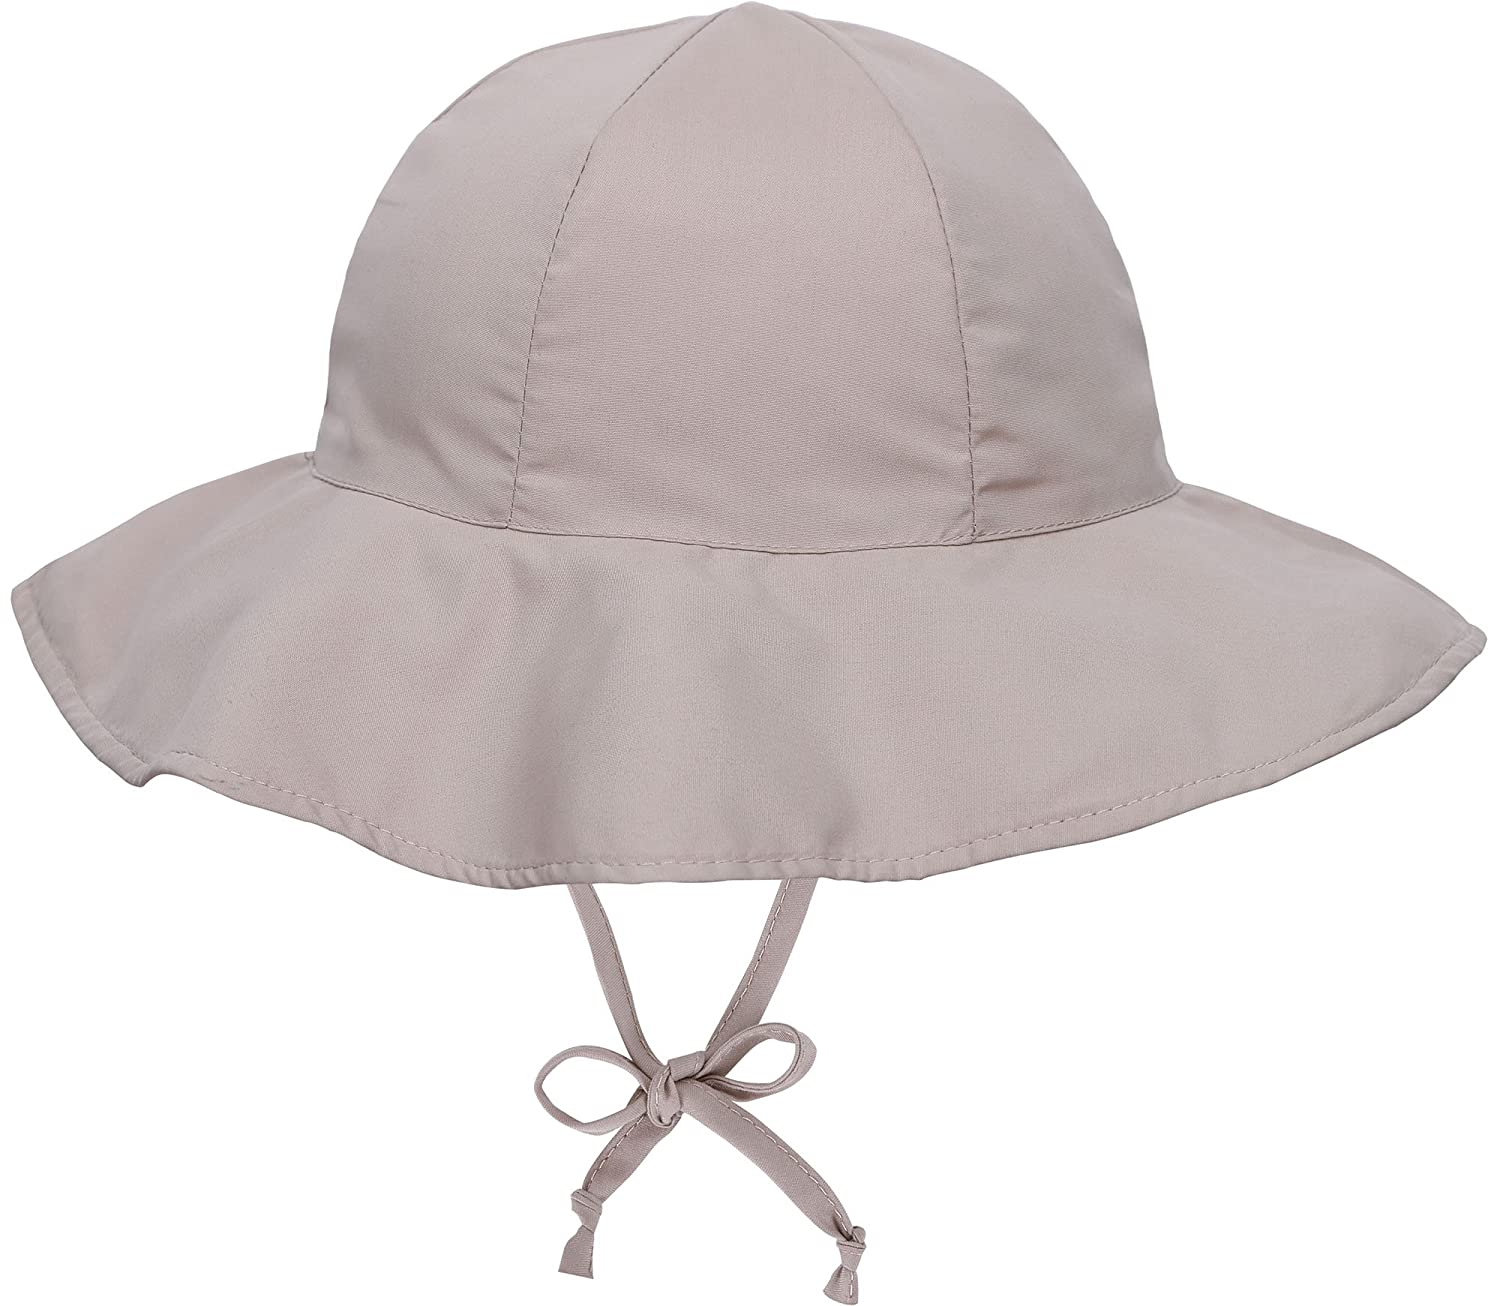 61a8a5d7cca Amazon.com  ThunderCloud Kid s 50+ SPF UV Protective Wide Brim Bucket Baby  Sun Hat  Clothing